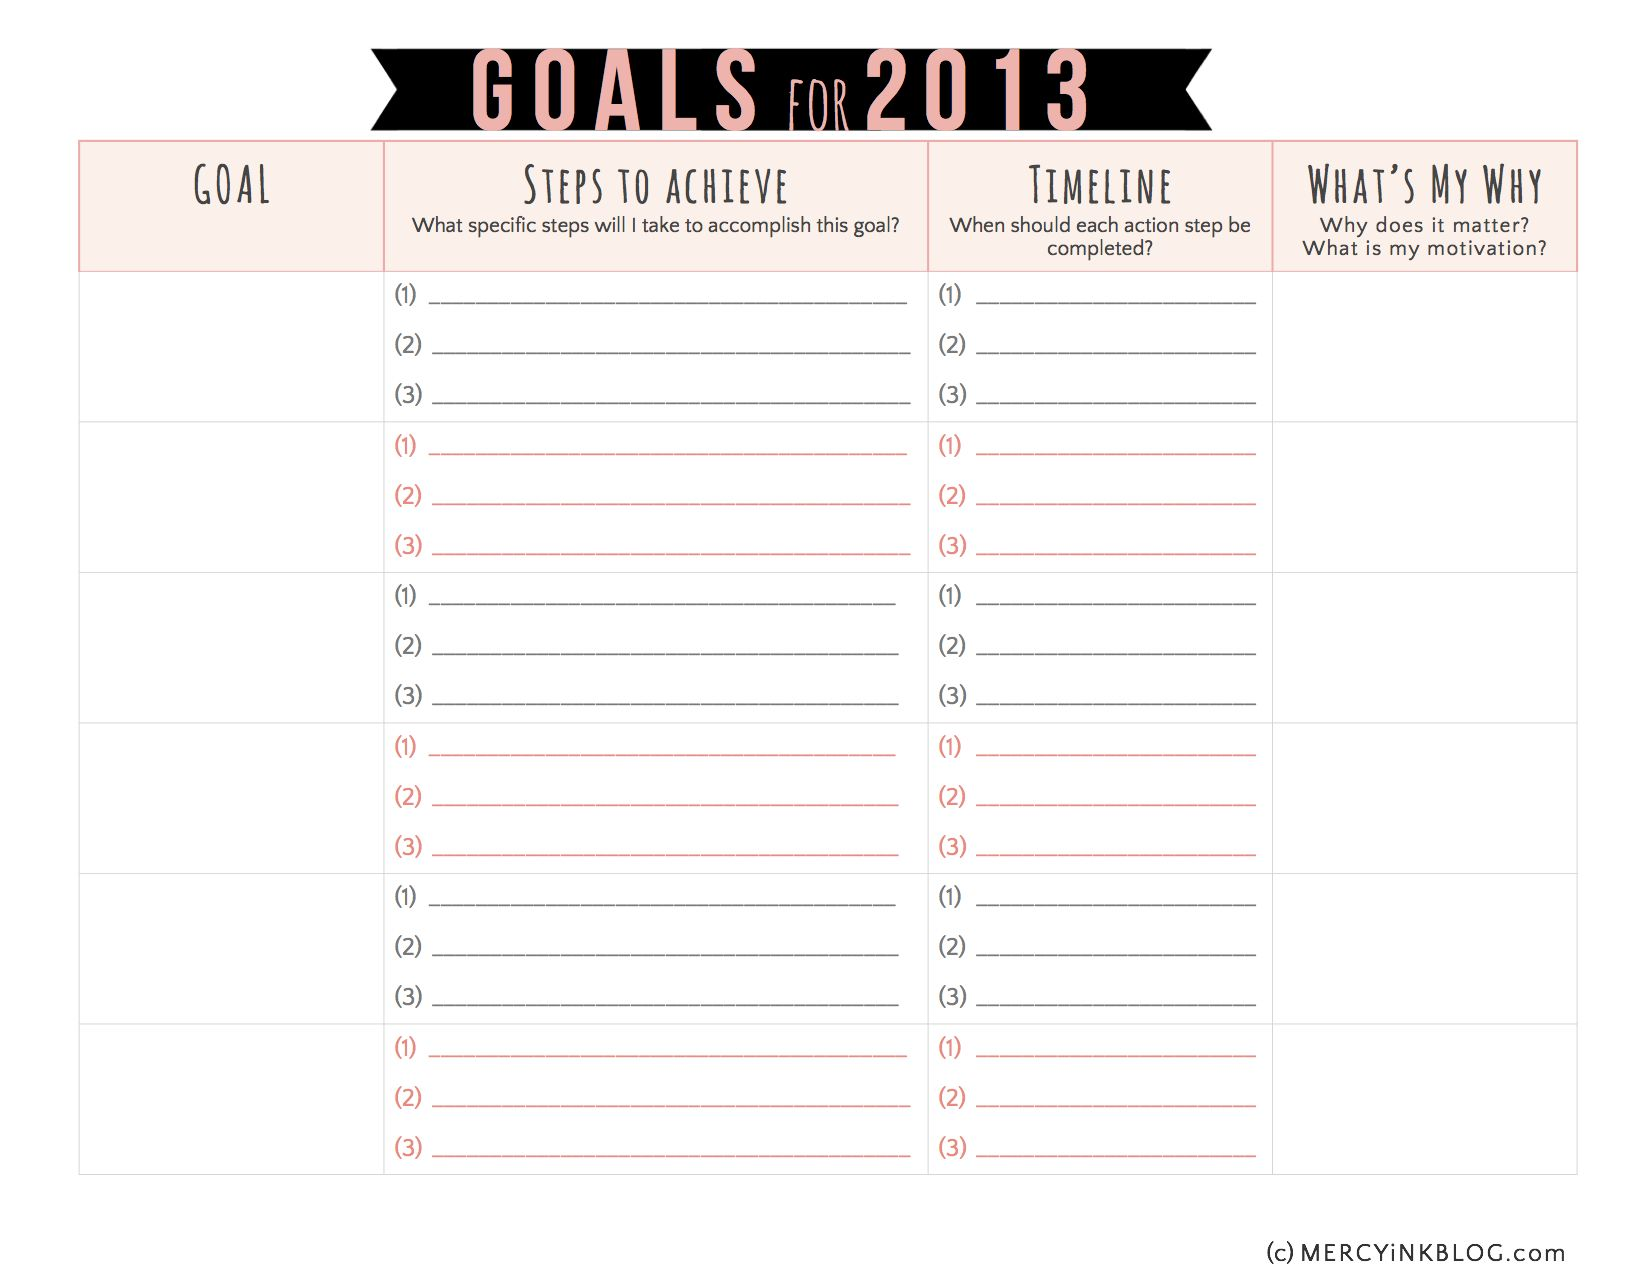 Worksheets Printable Goal Setting Worksheet vision goal setting in 2013 a free printable printables and planning worksheet